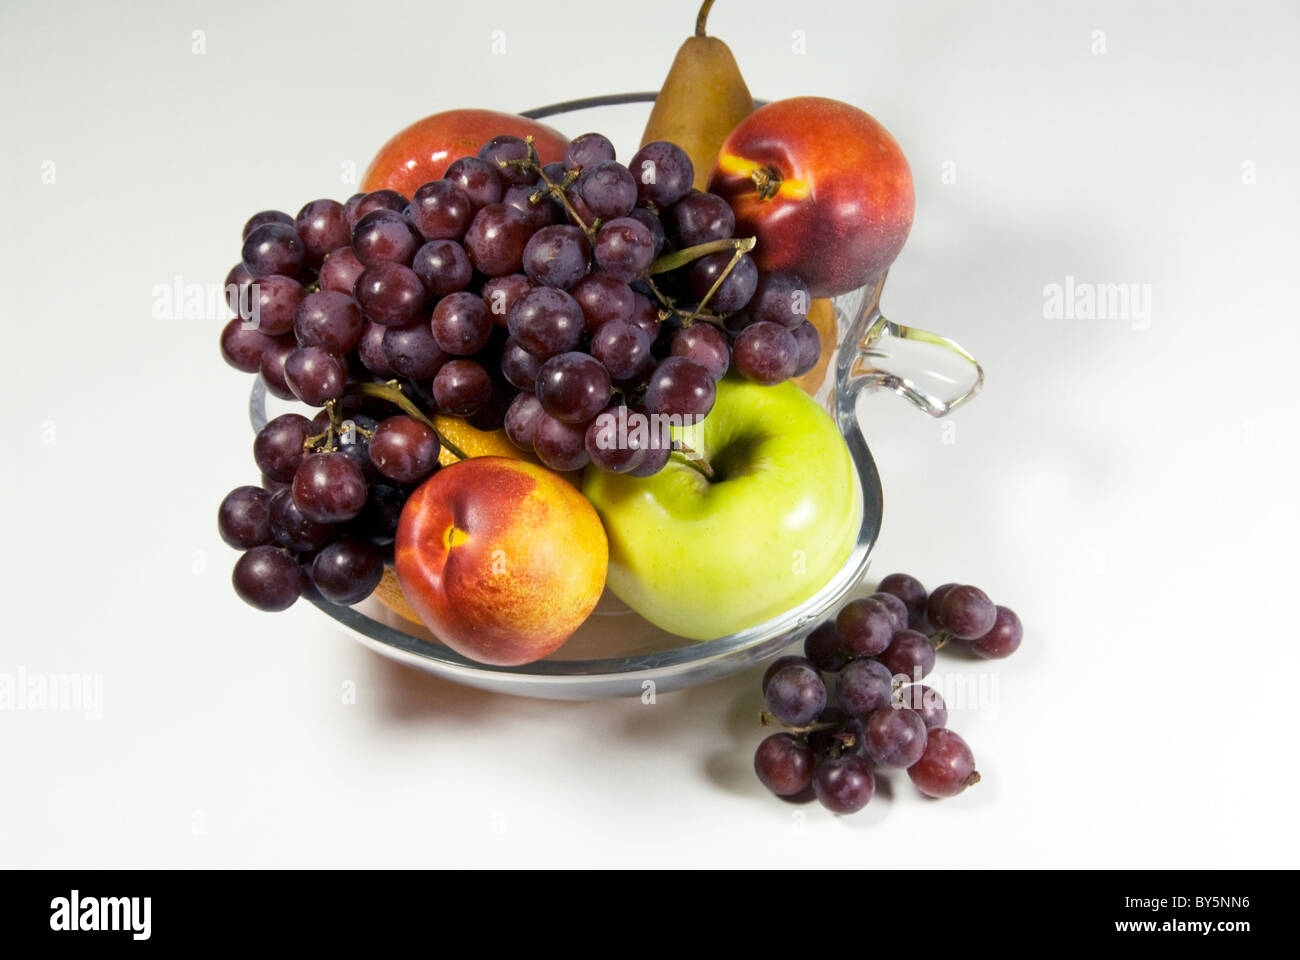 Stock photo of fruit bowl filled with grapes, apples, oranges and a pear. The bowl is apple shaped. - Stock Image